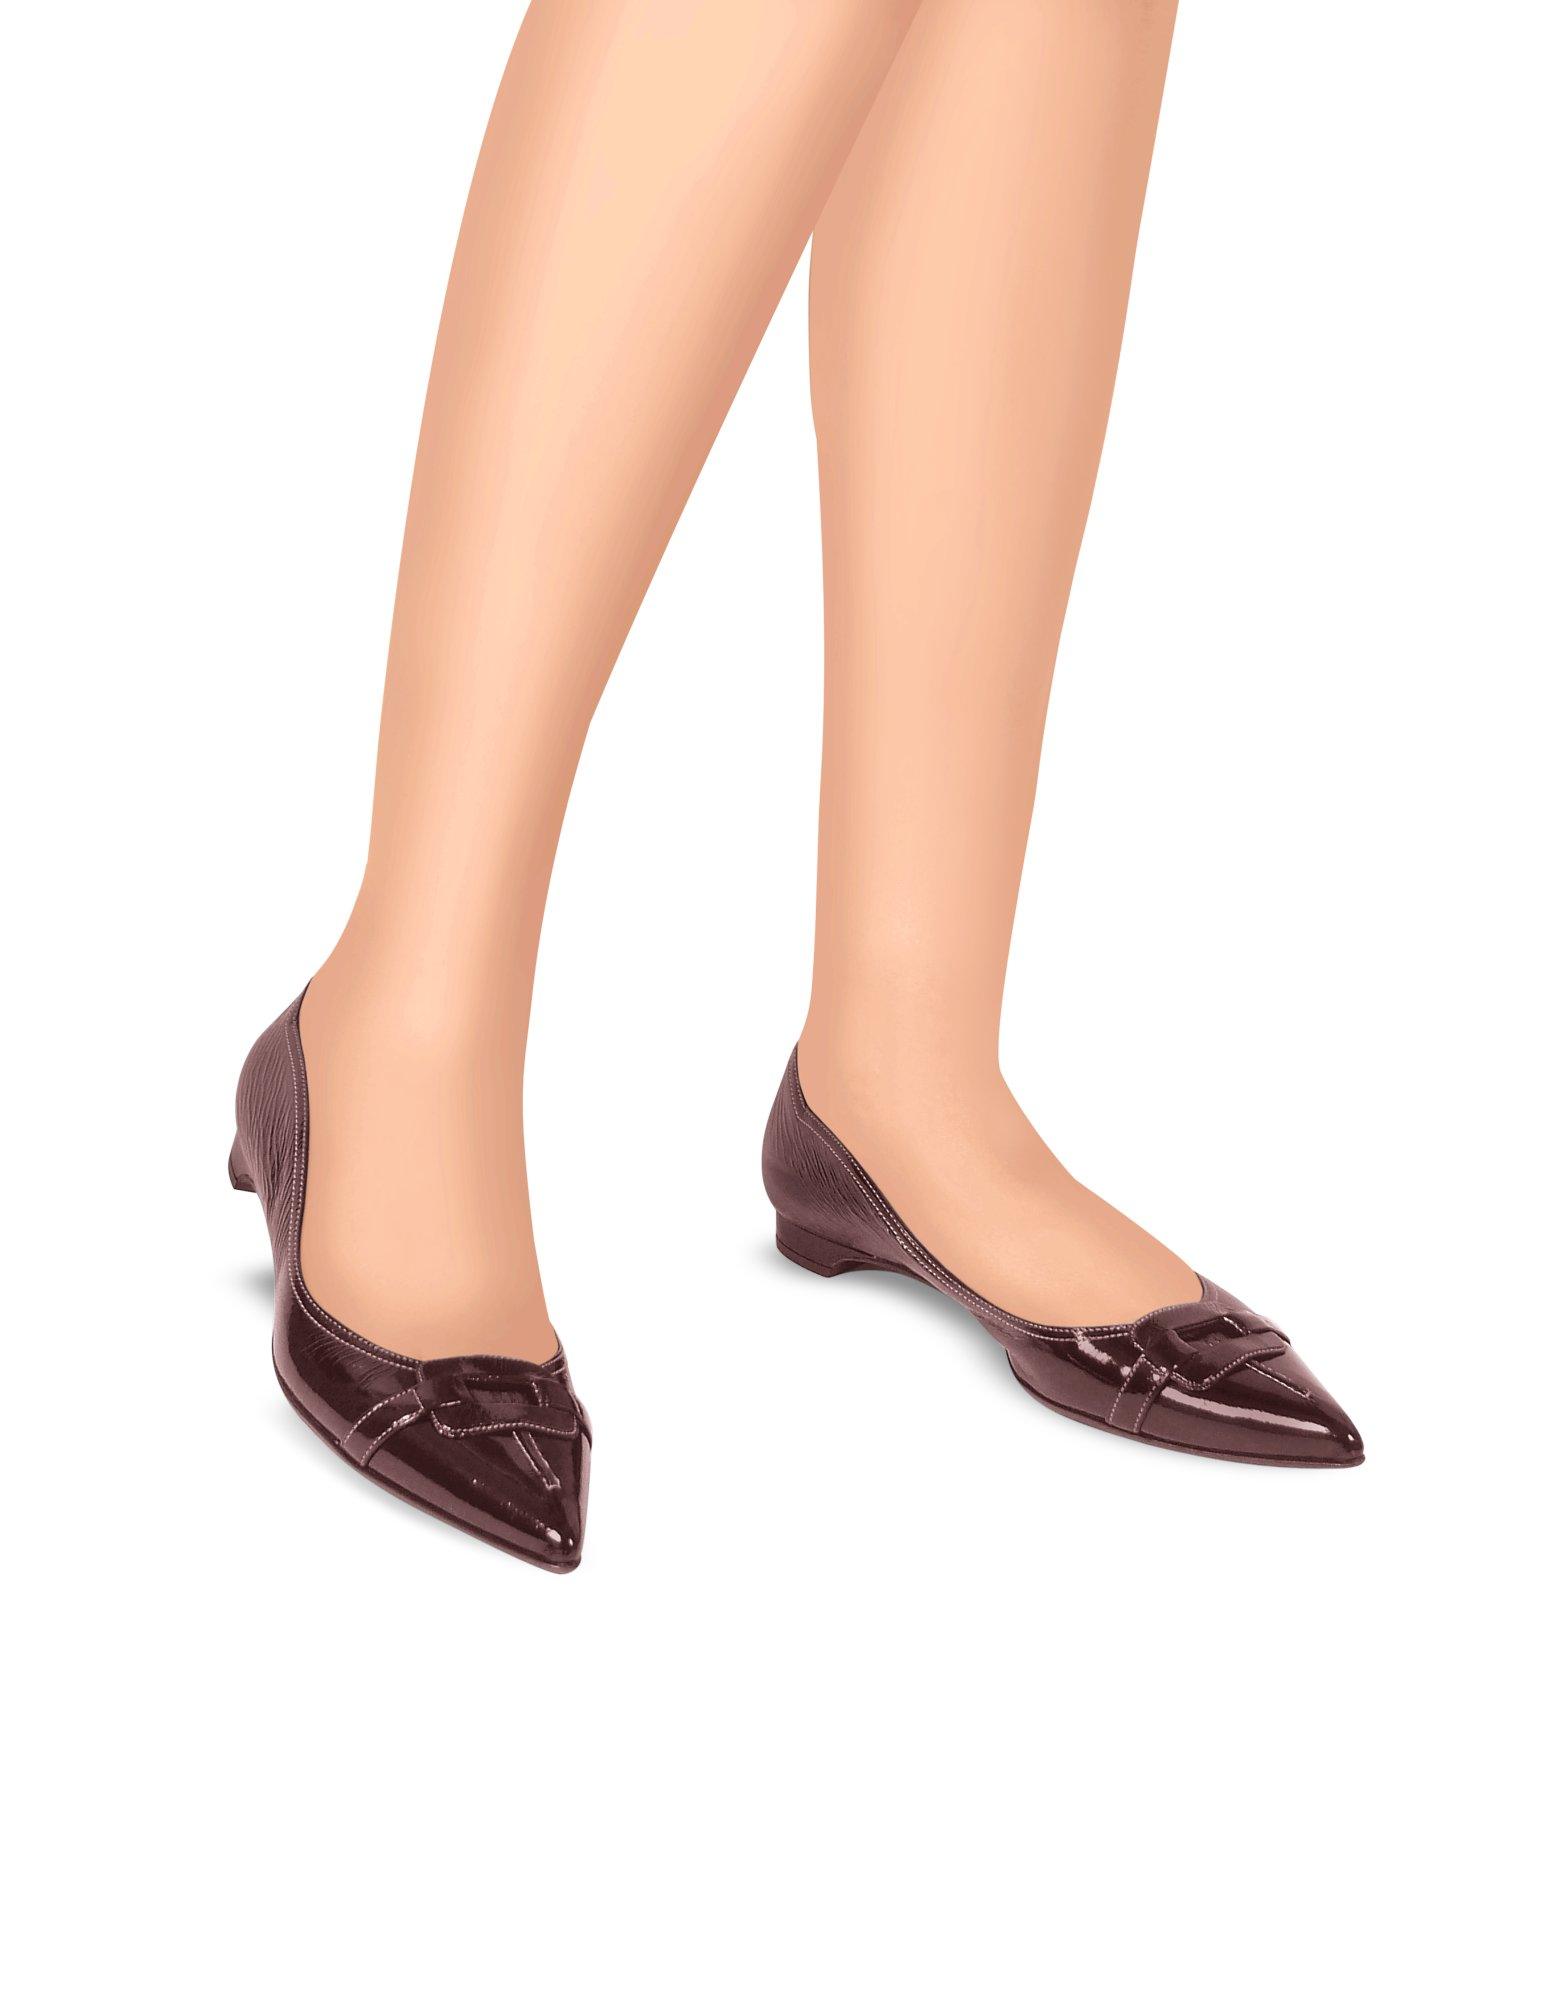 c2aacfc0 FORZIERI Burgundy Patent Leather Ballerina Flat Shoes in Brown - Lyst